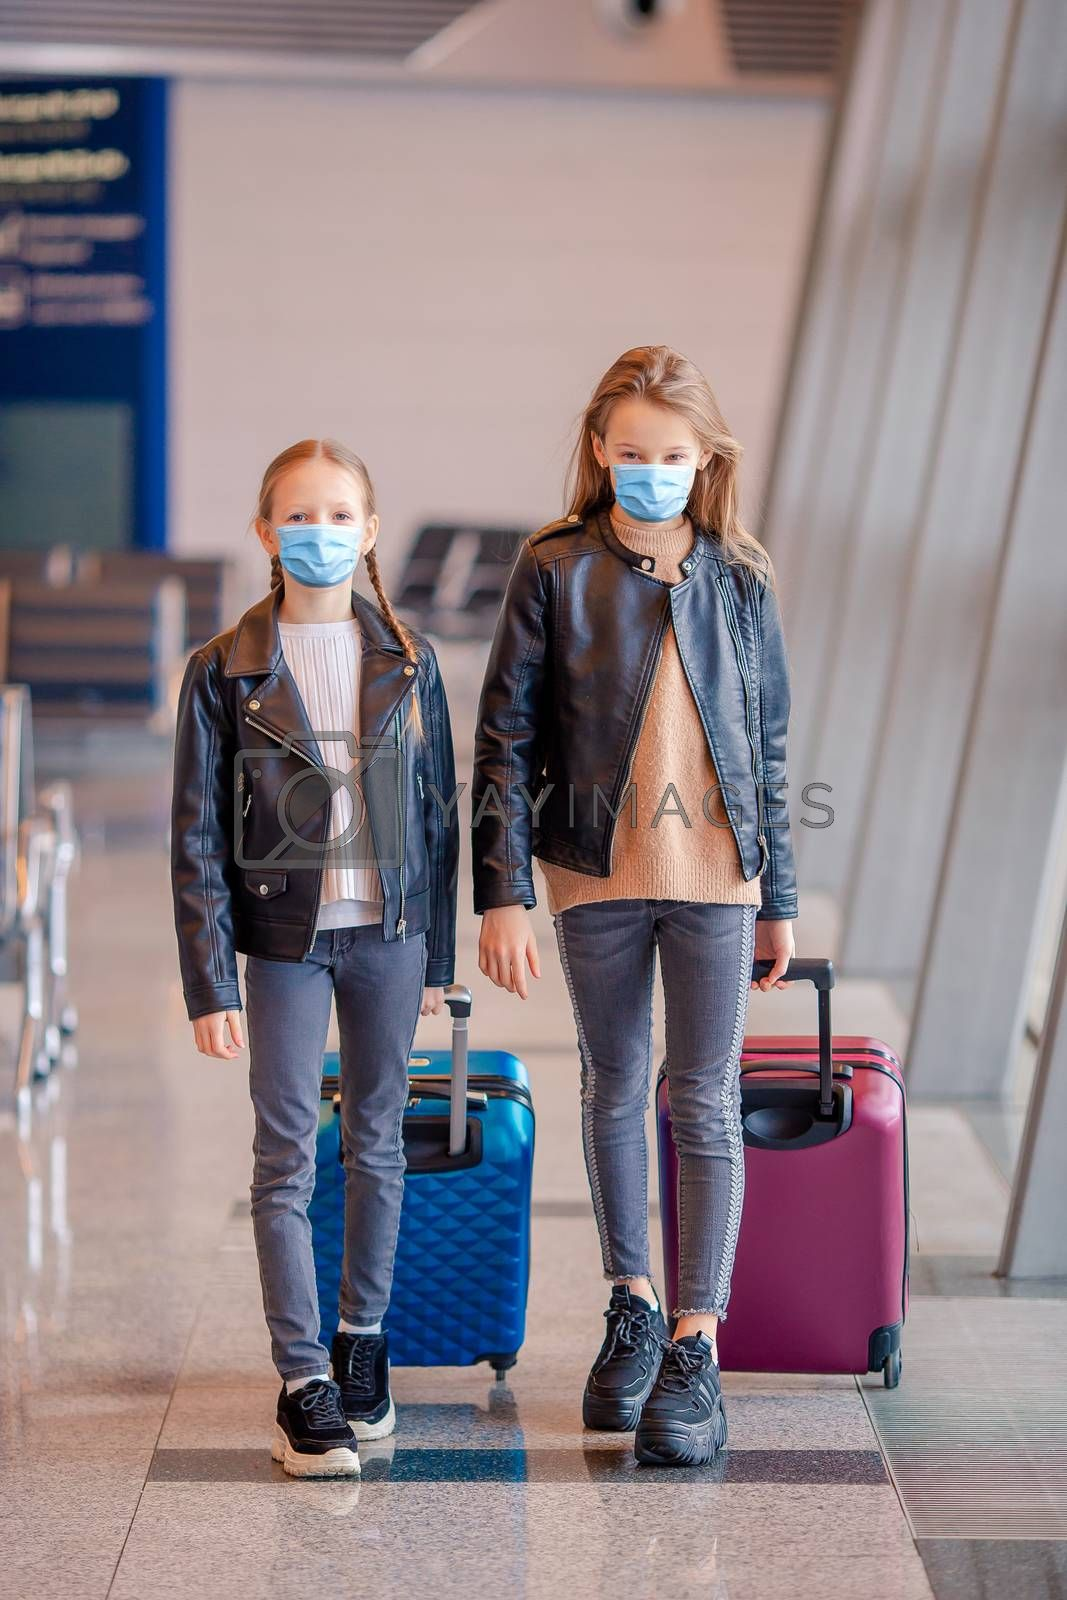 Little adorable kids in international airport with boarding pass